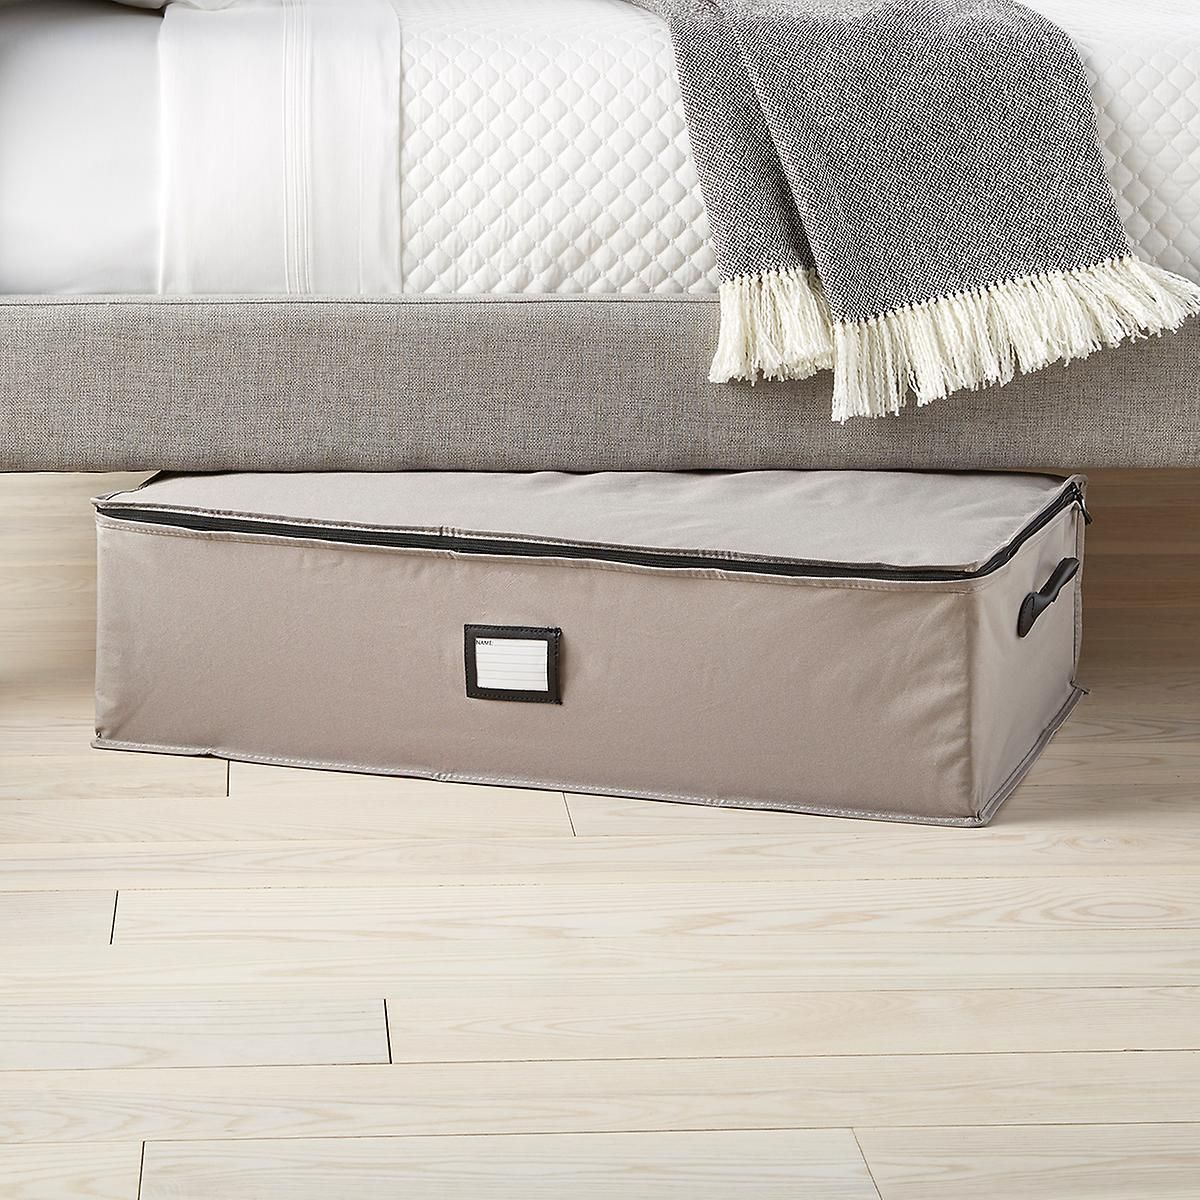 Foldable Lidded Storage Box Compartment Dustproof Thicken Cotton Linen Covered